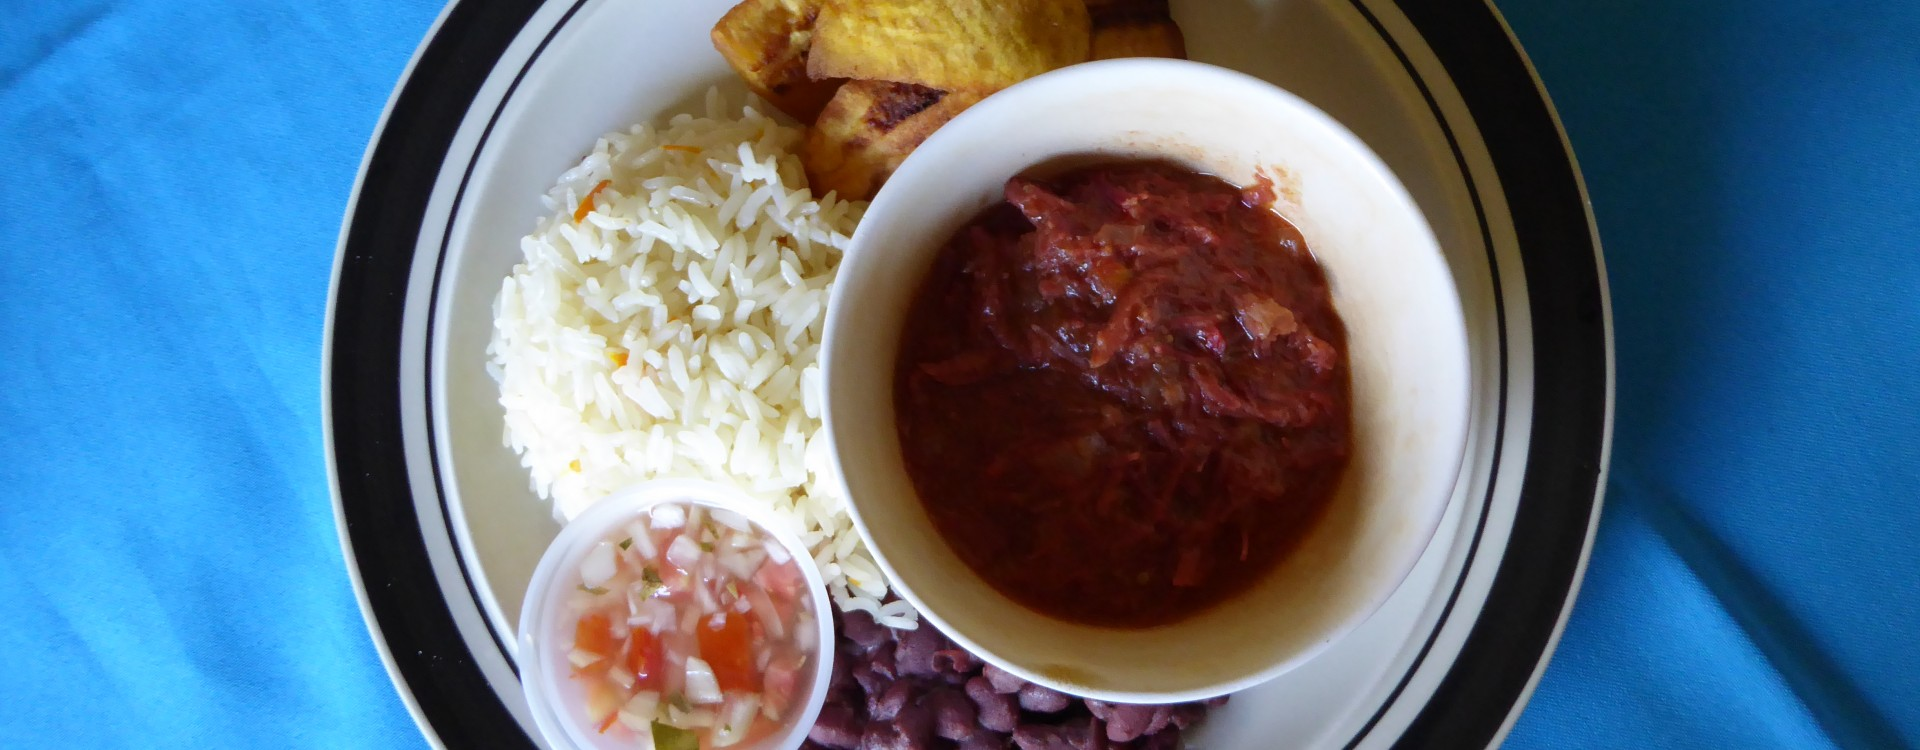 Nicaraguan Cuisine - Rice, beans and plantain